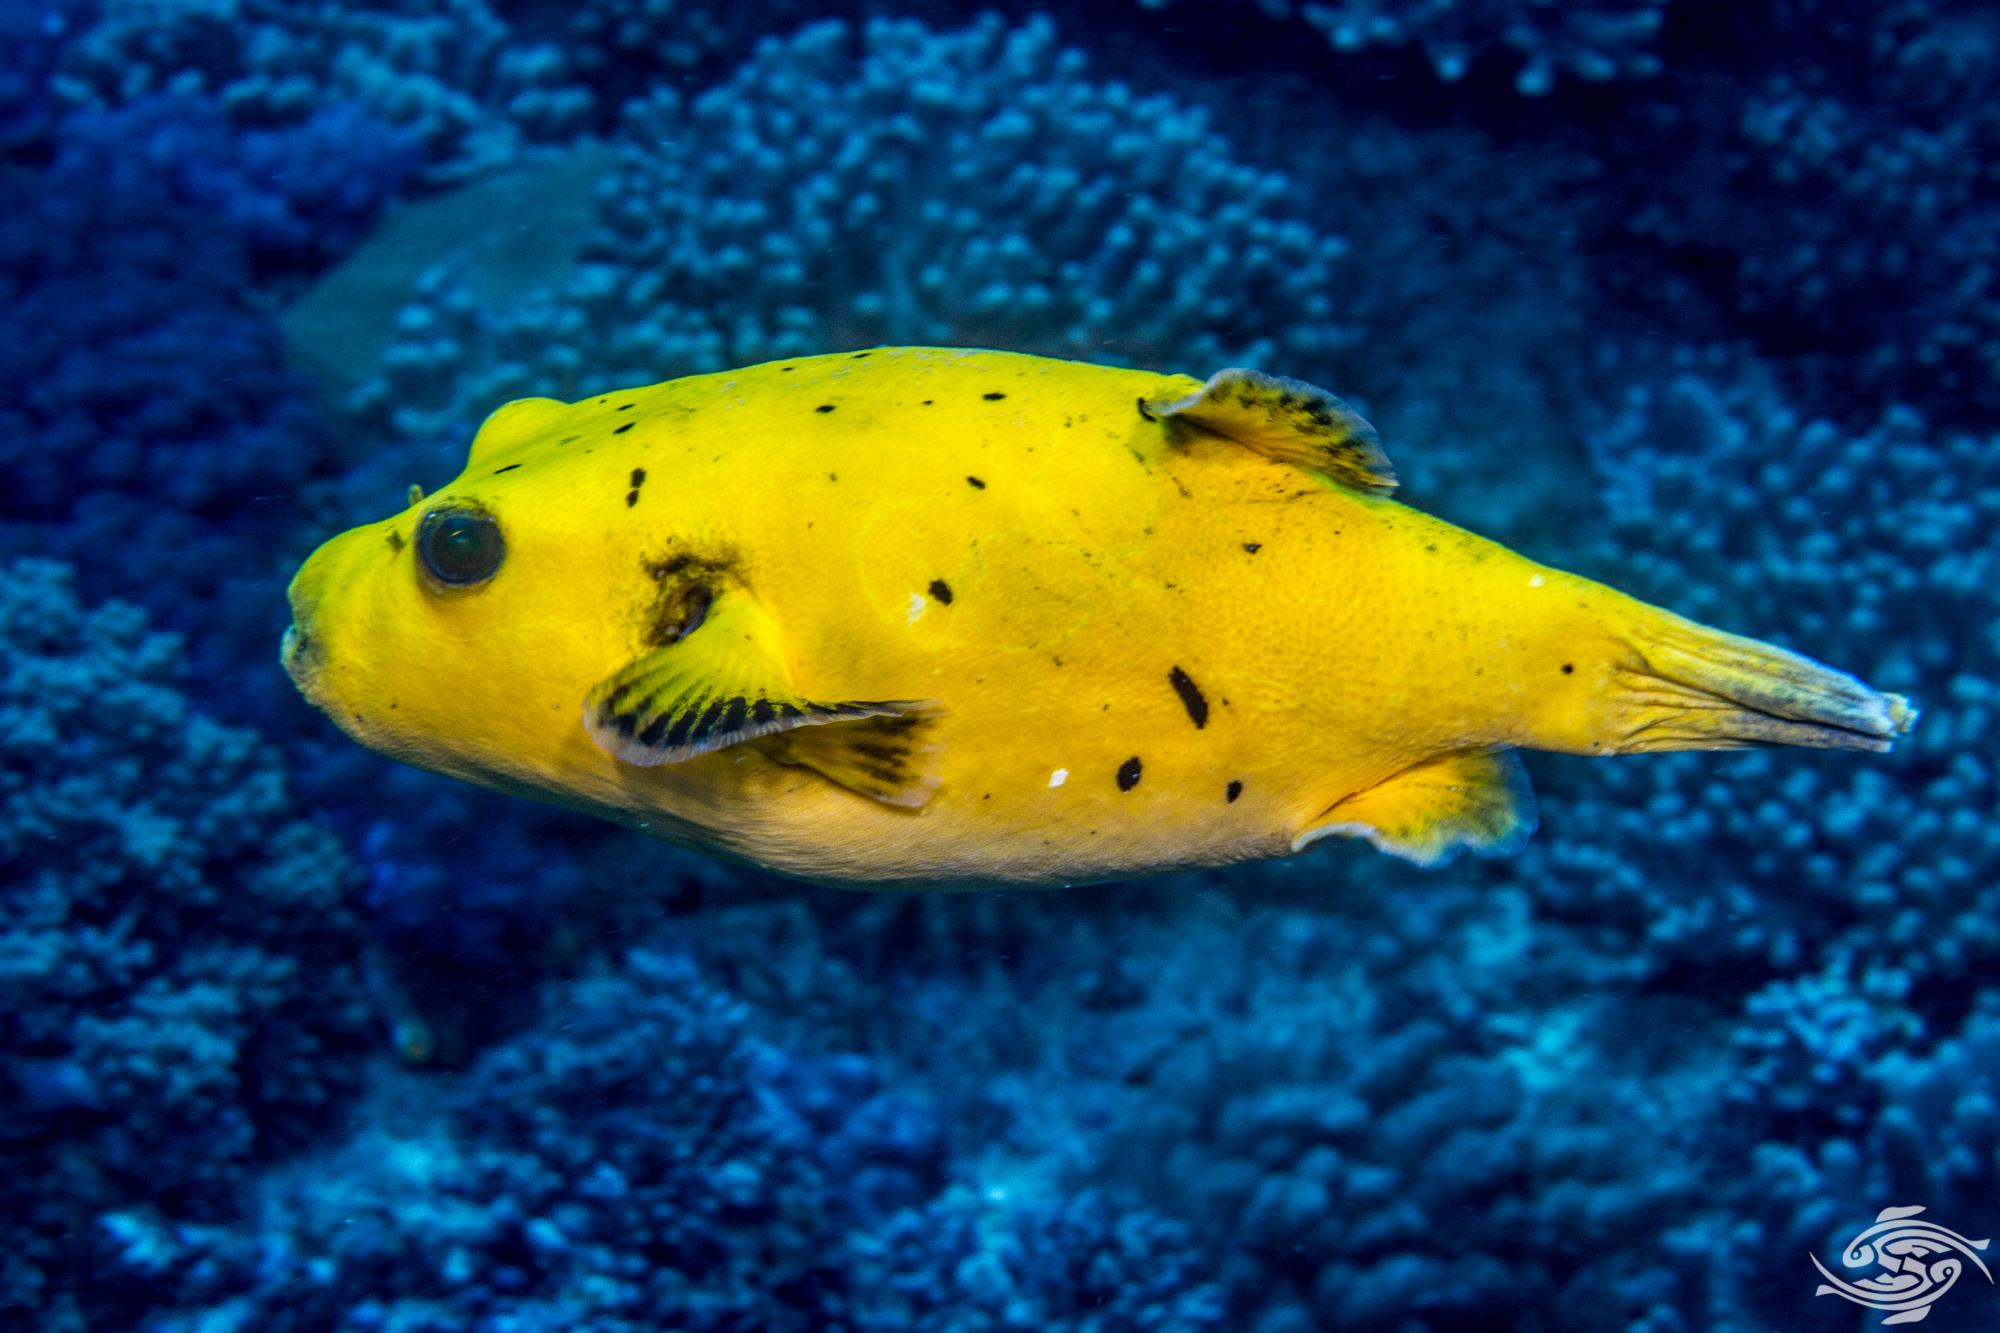 guineafowl puffer or golden puffer, Arothron meleagris